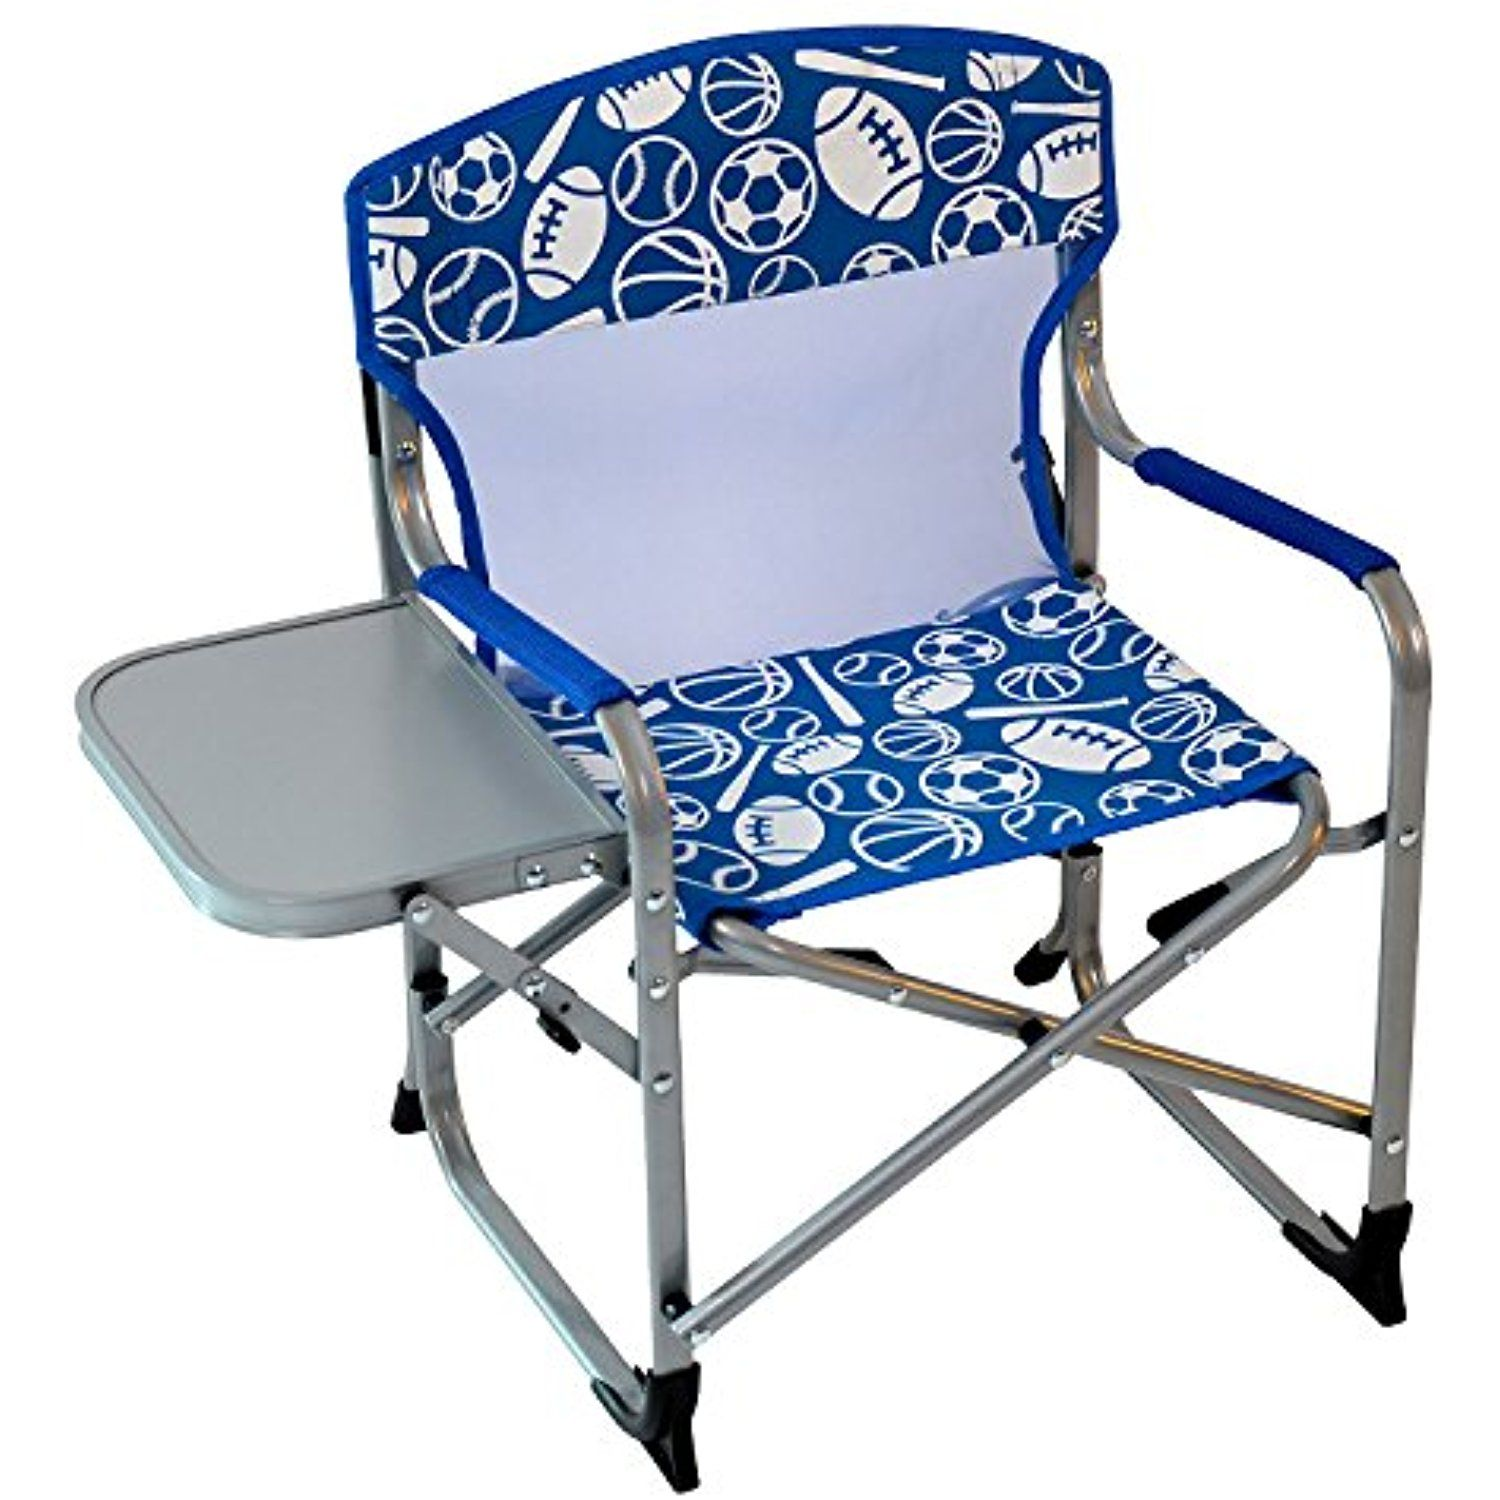 Kids portable directors chair blue sports check this